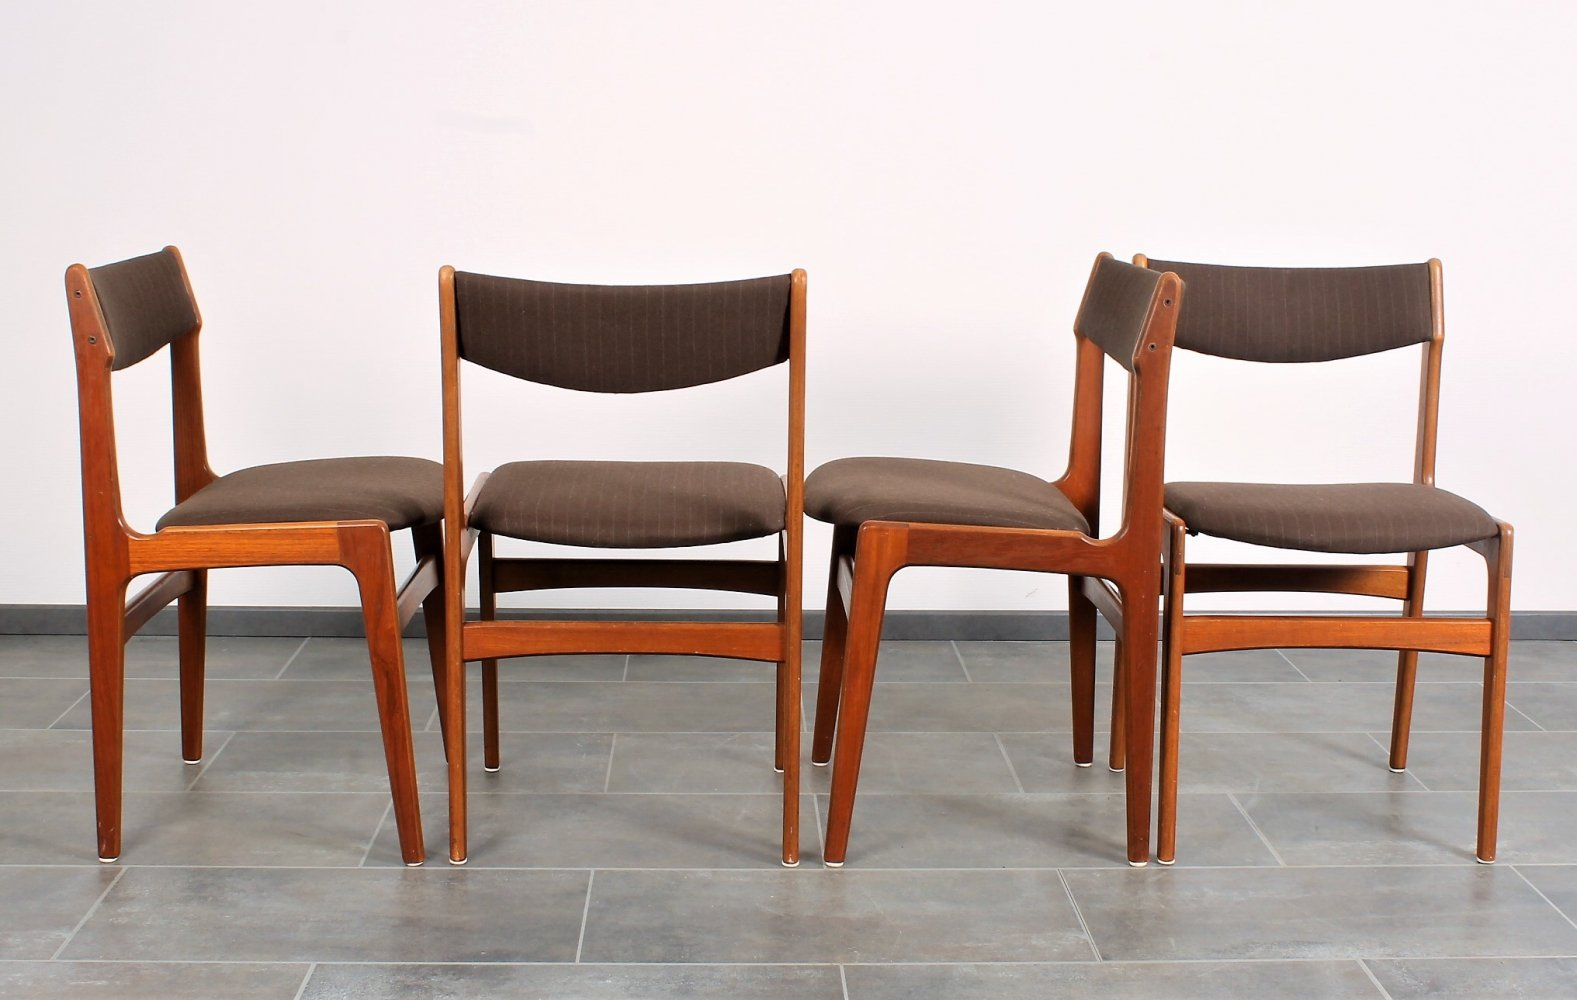 Set of 4 Erik Buch chairs in teak from Anderstrup Denmark